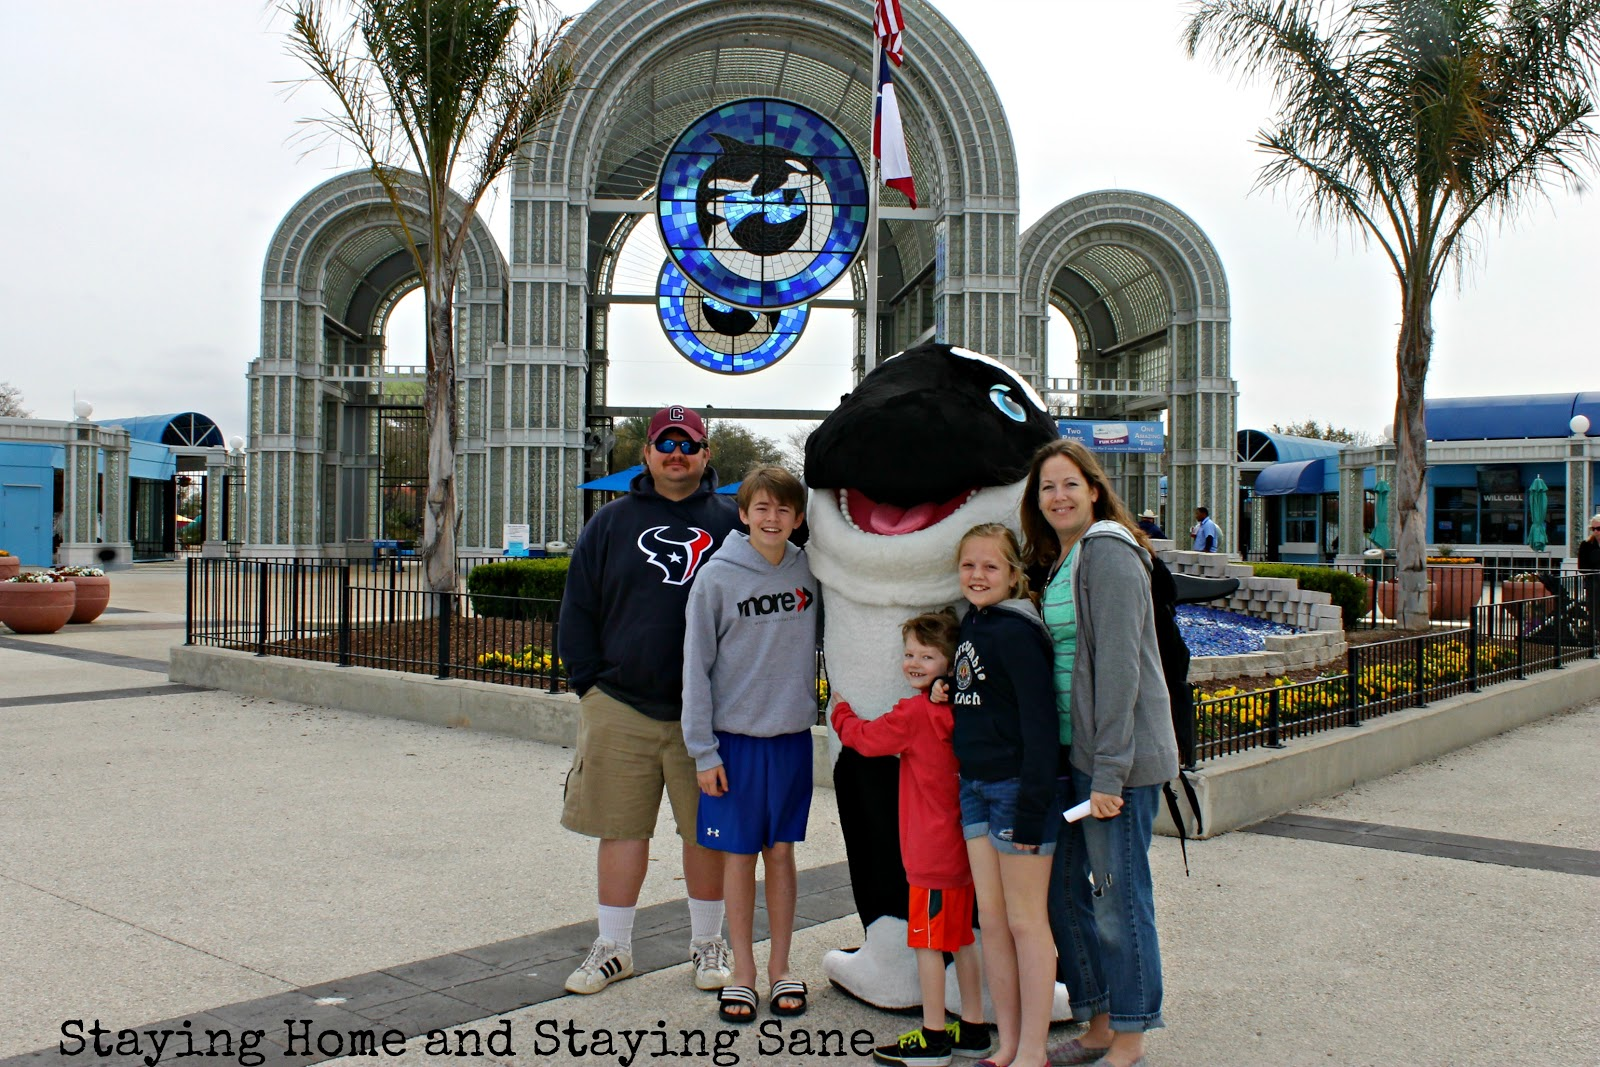 Seaworld san antonio family fun yes even with a teenager in tow